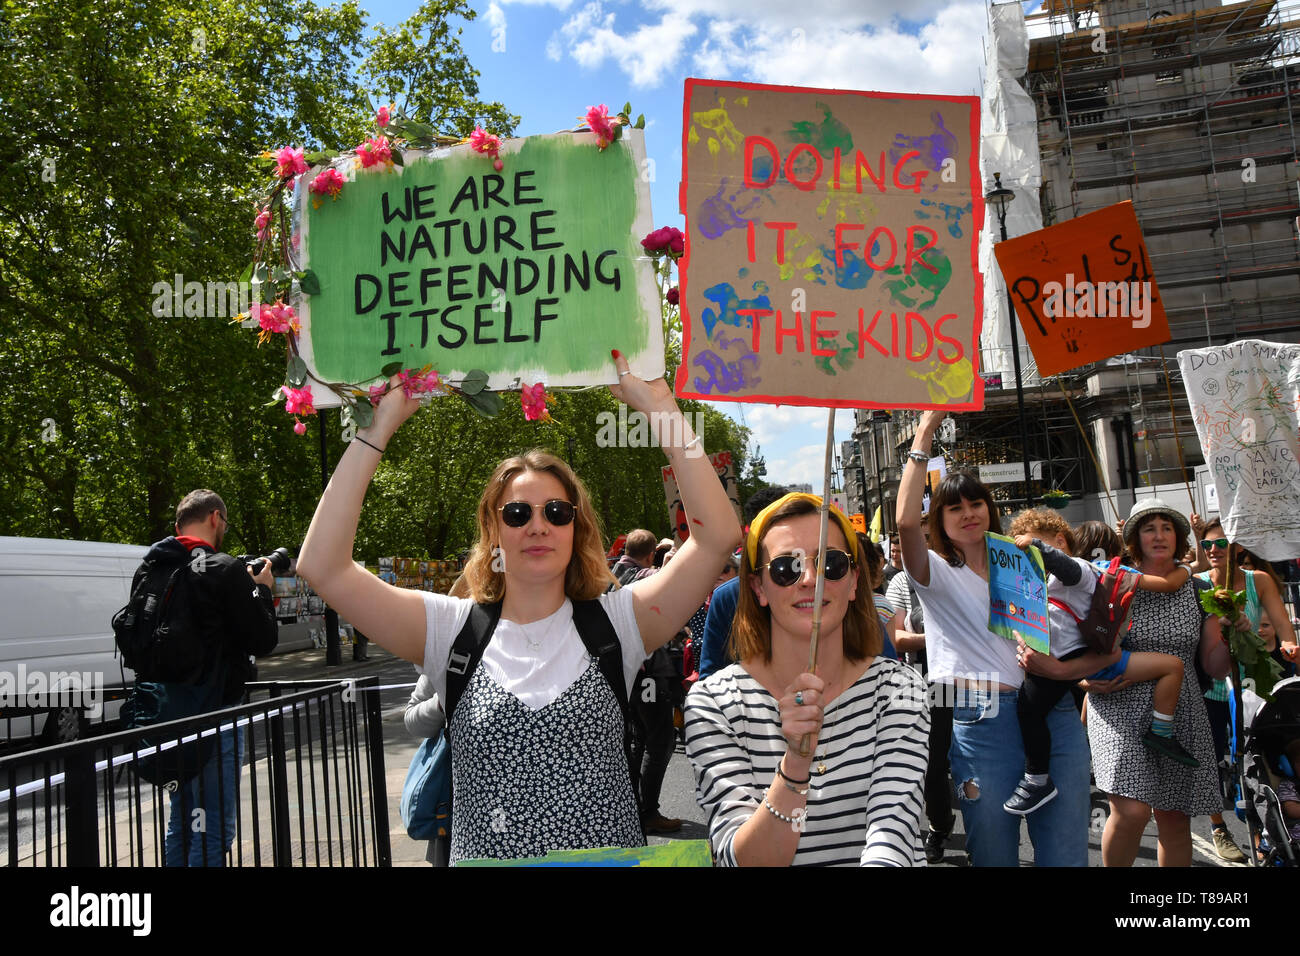 London, UK. 12th May, 2019. Thousands join Mothers rise up host a Mothers Climate March 2019 in Central London, on 12 May 2019, London, UK Credit: Picture Capital/Alamy Live News - Stock Image